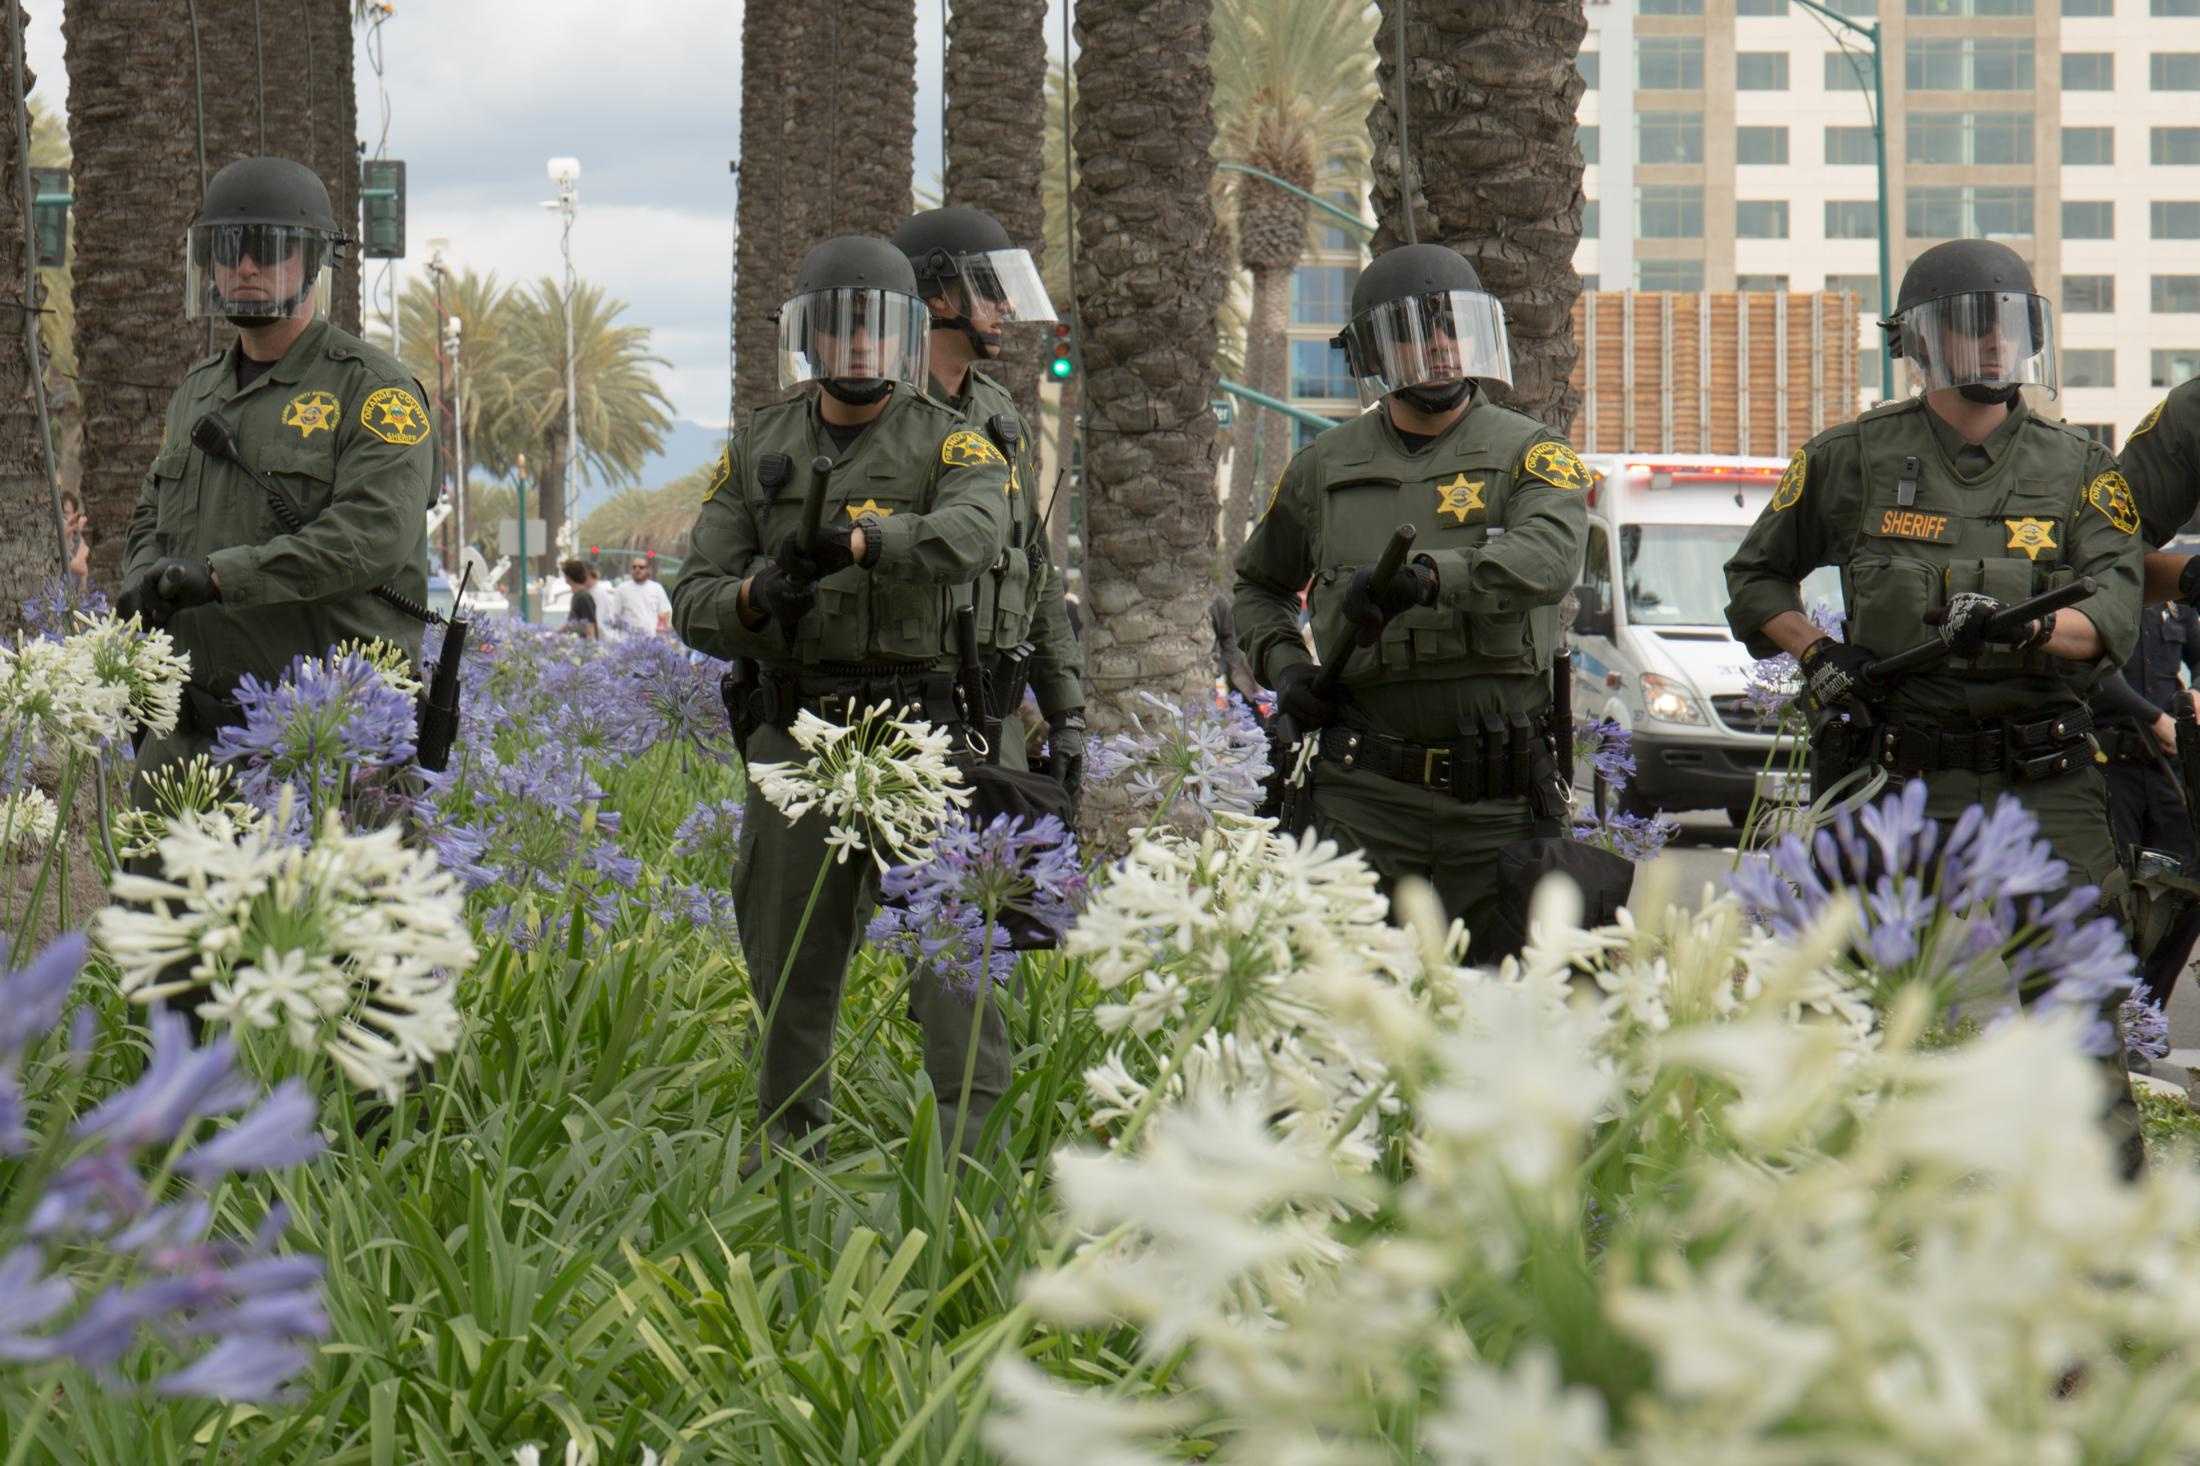 Orange County Sheriff officers in riot gear walk down the median filled with flowers and palm trees to move protesters away from the entrance to the Anaheim Convention Center where Donald Trump held a campaign rally on May 25, 2016.